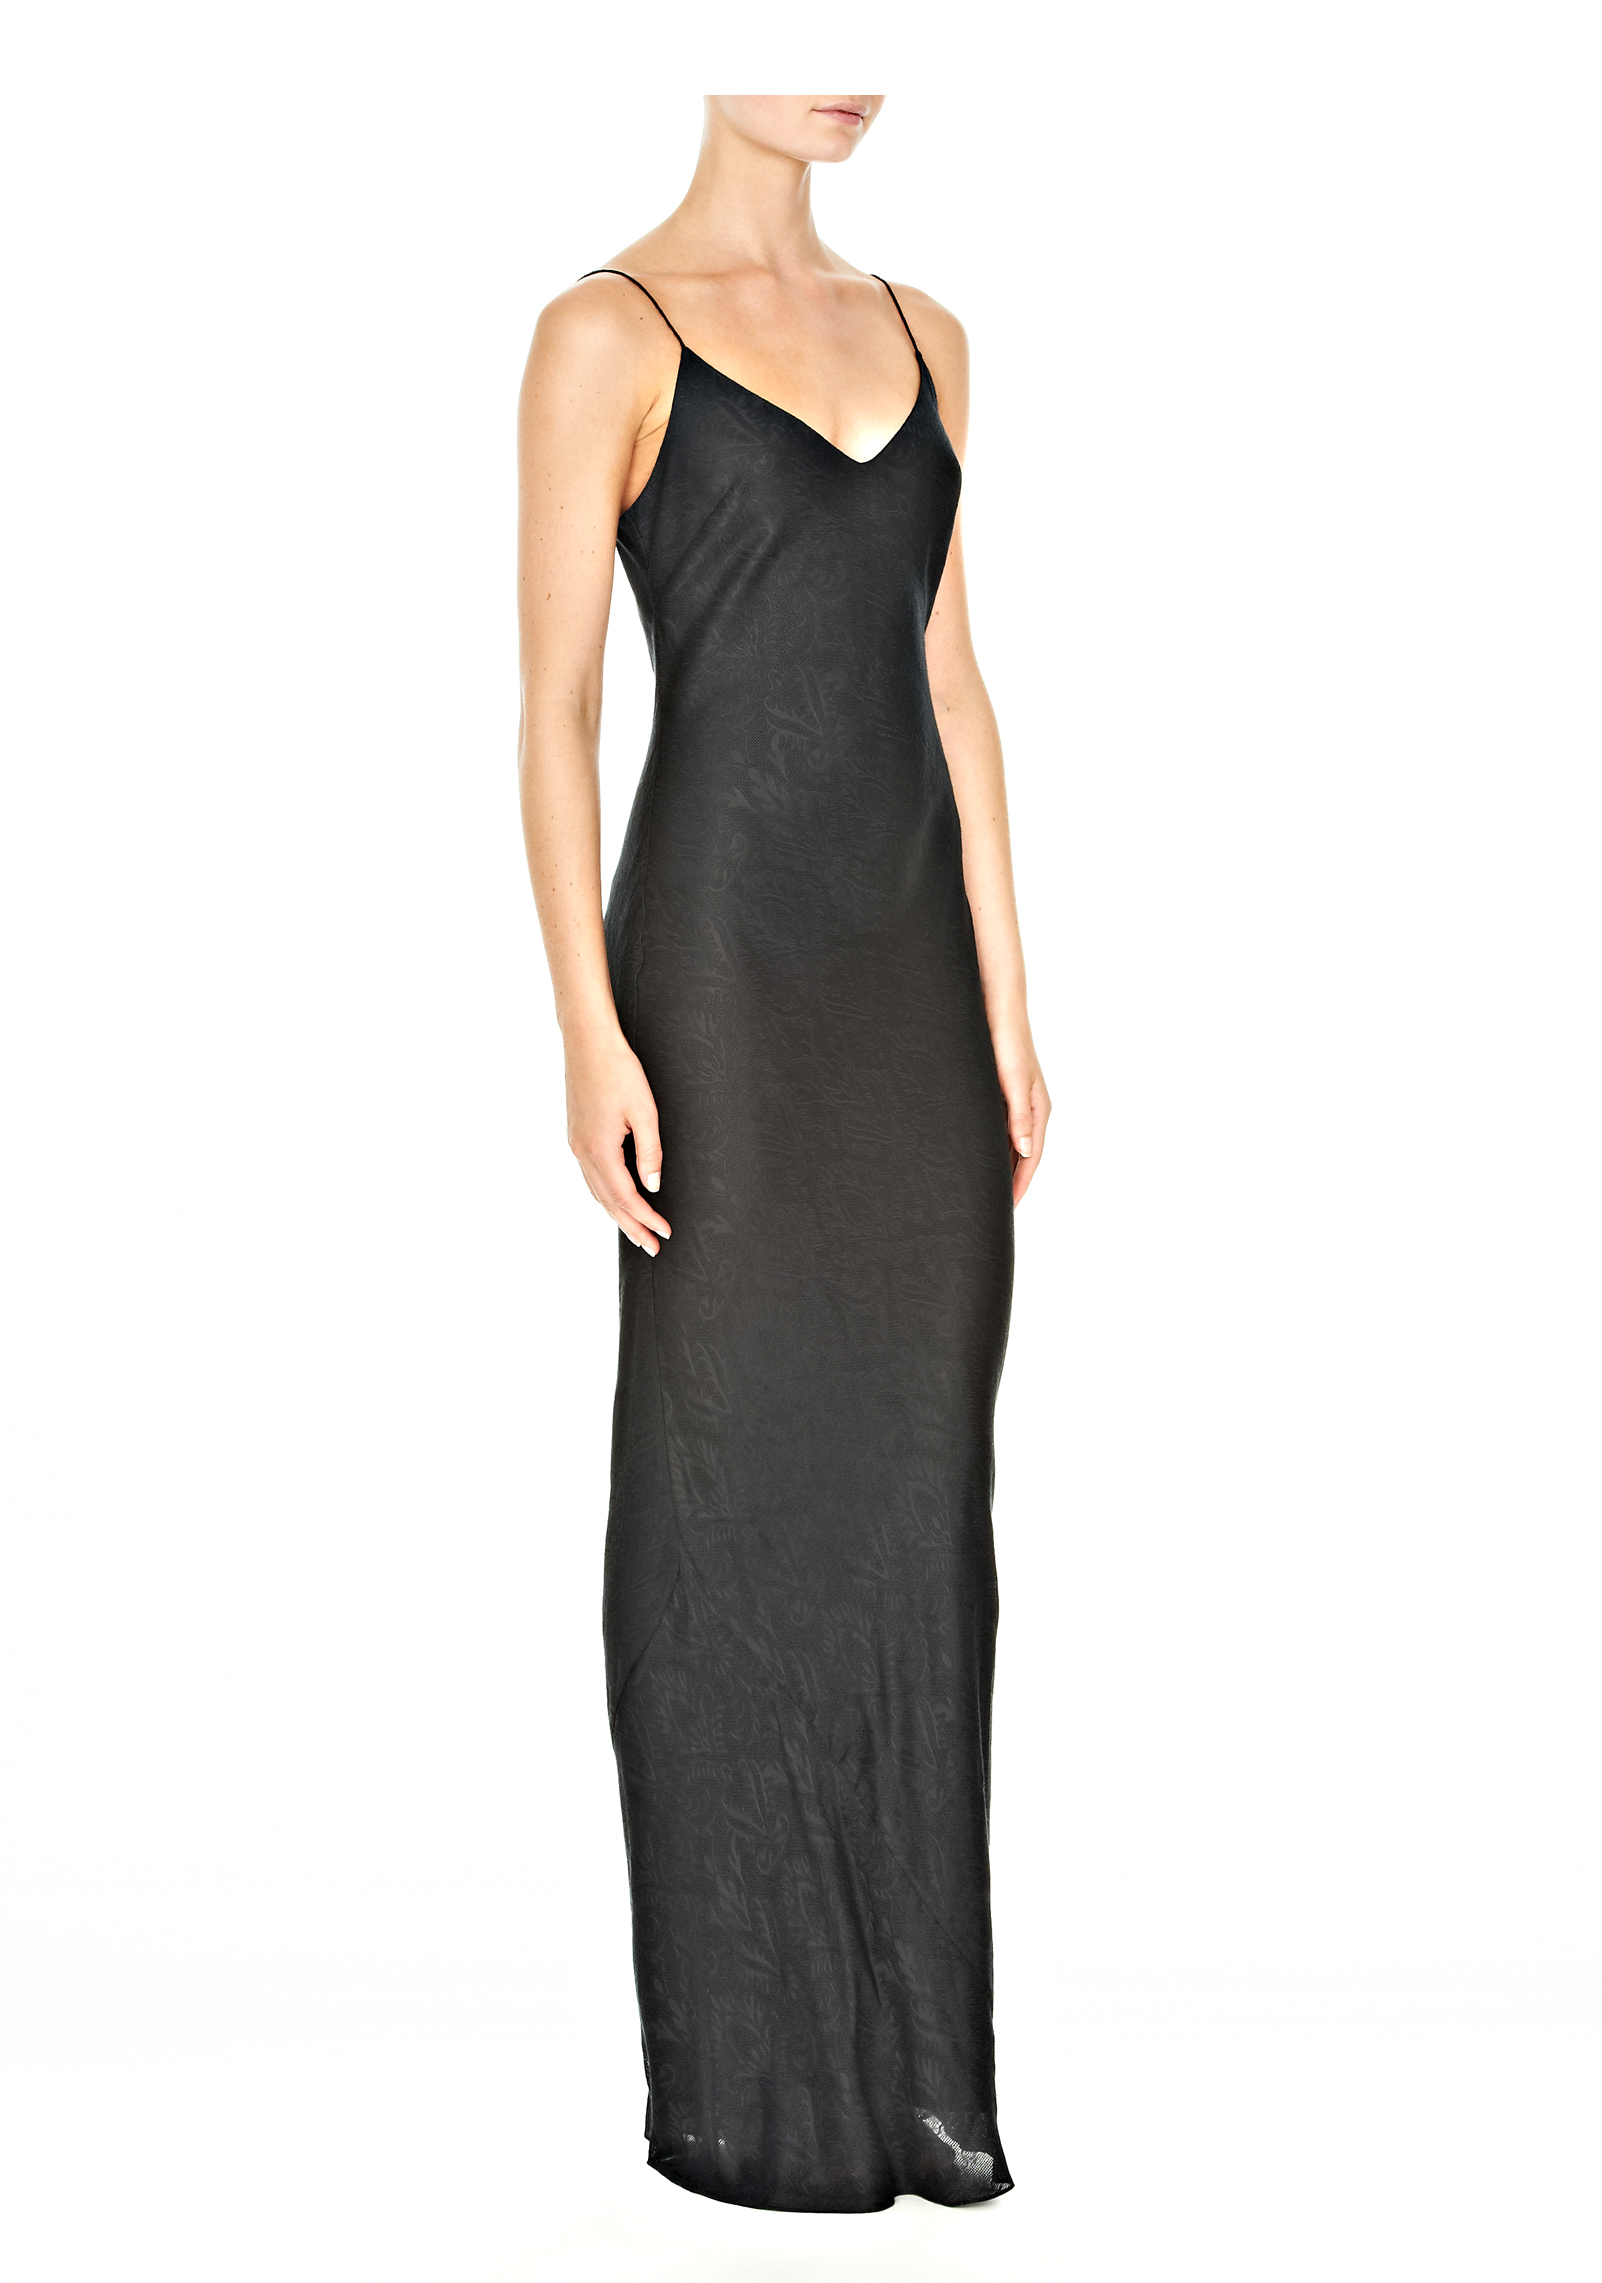 Alexander wang Long Slip Dress in Black  Lyst